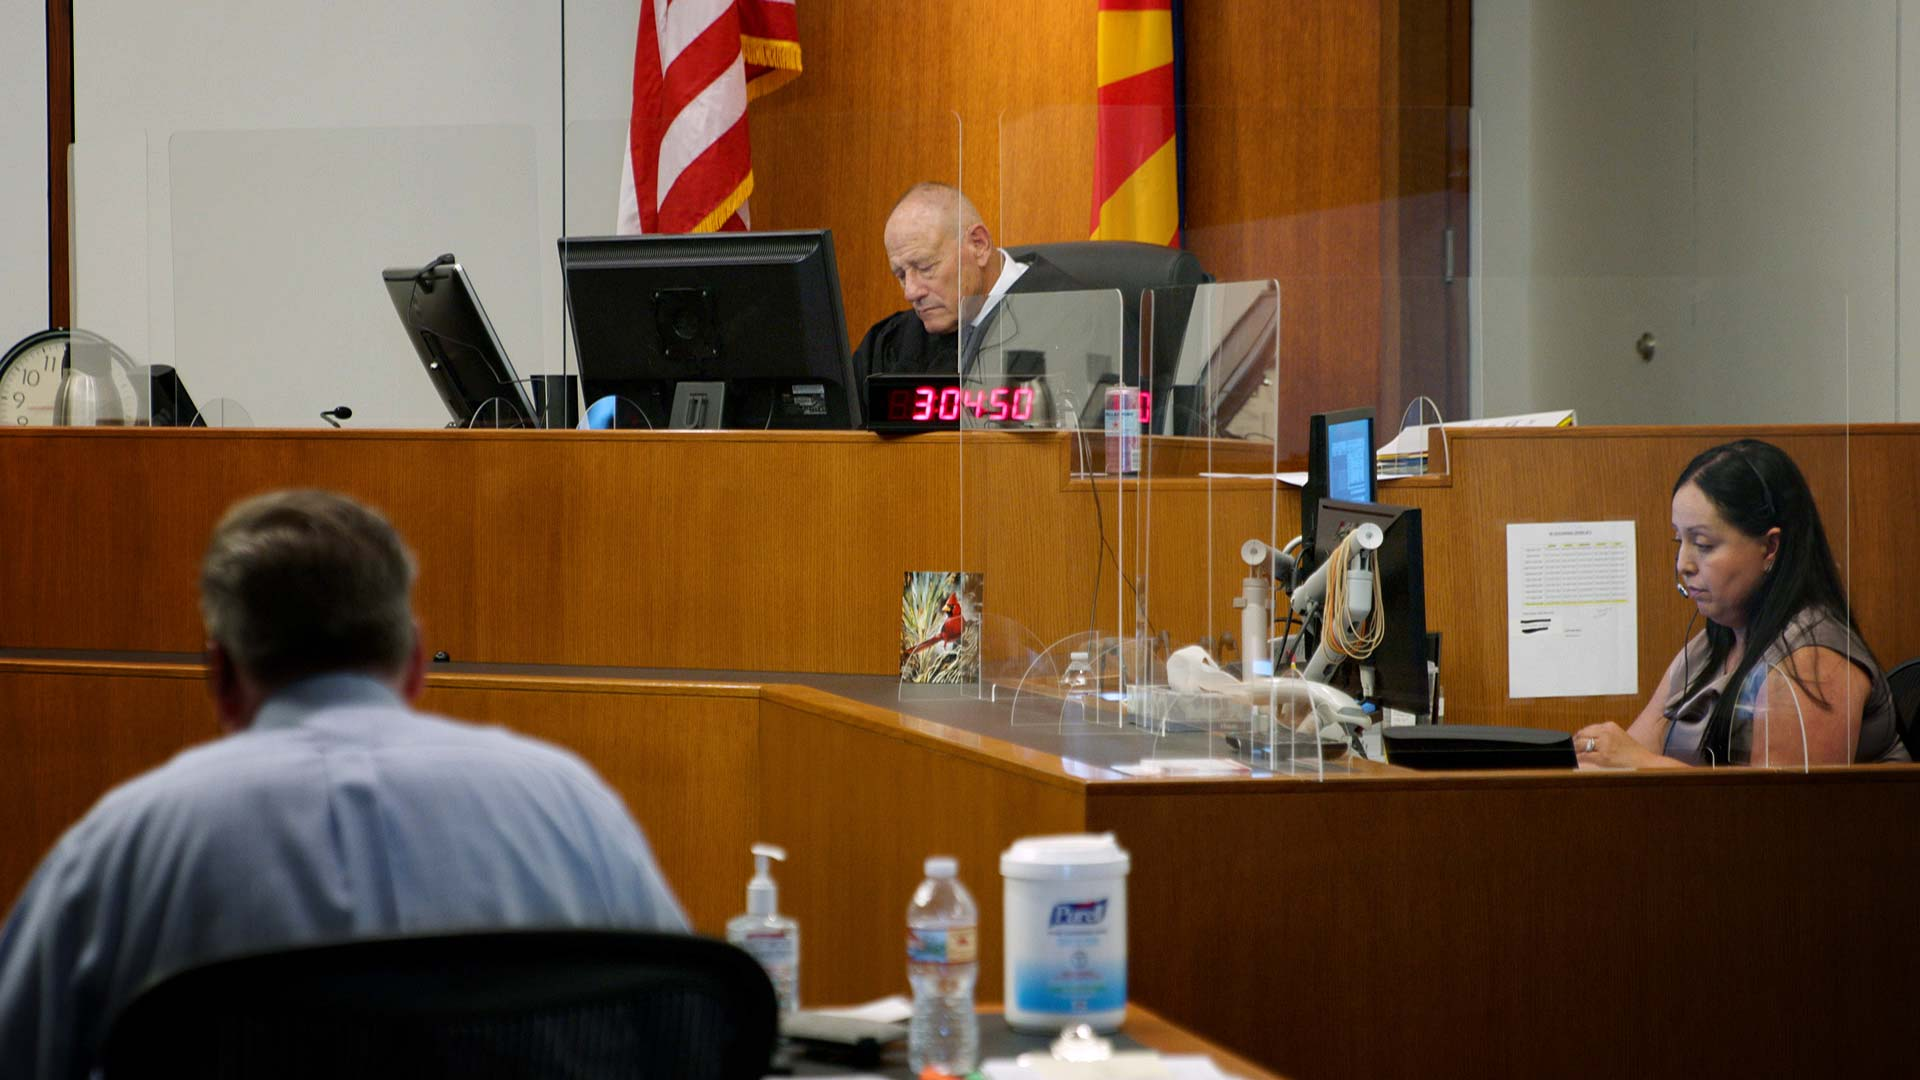 An eviction hearing takes place virtually in the courtroom of Judge Ronald Newman at the Pima County Consolidated Justice Court on Aug. 11, 2021.